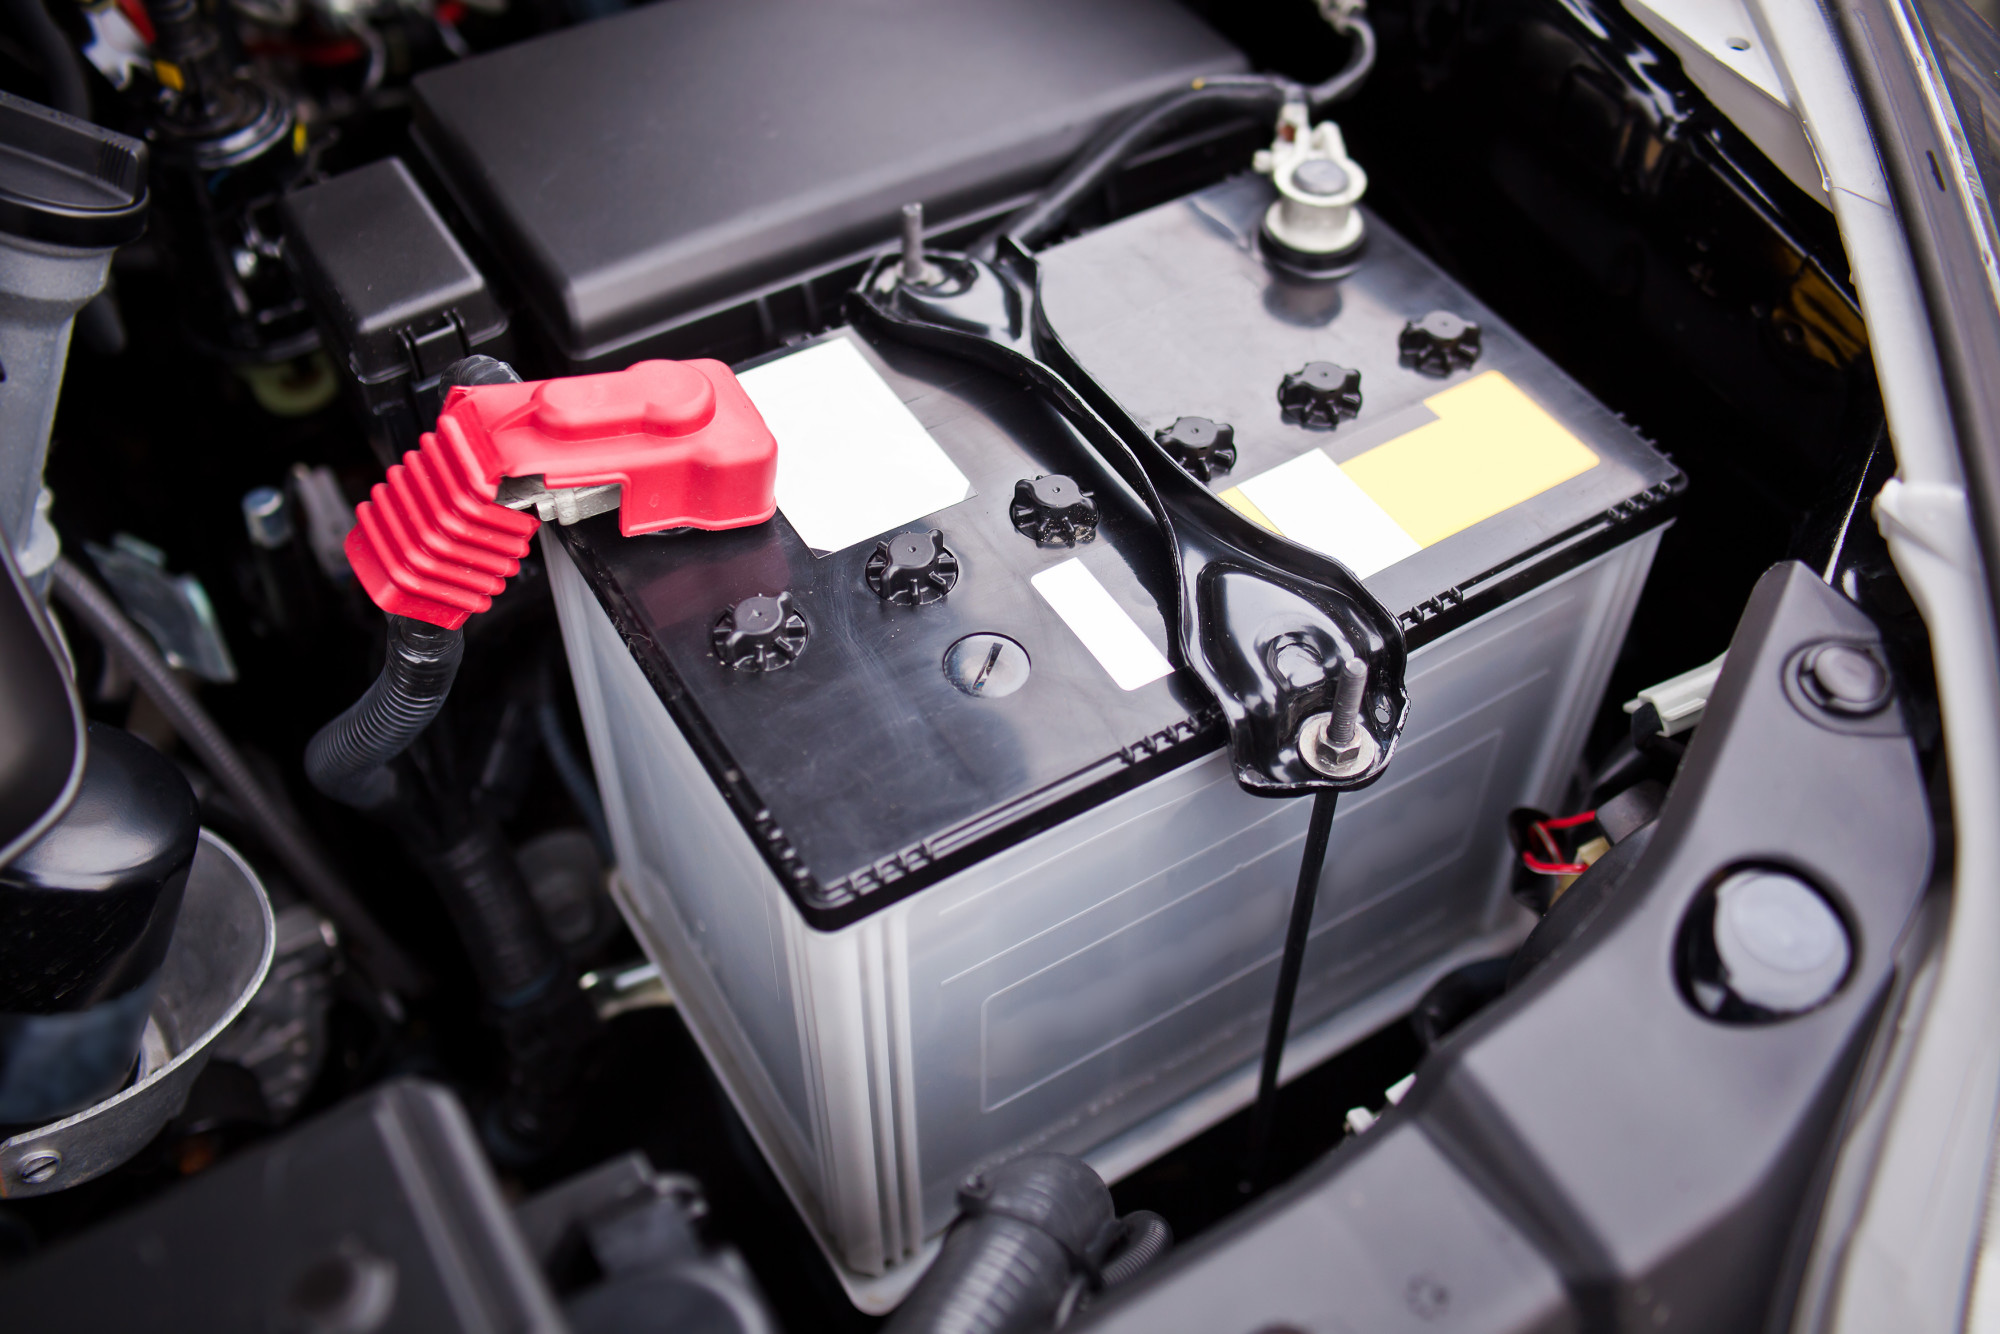 Battery installed near the ?8 motor in SUV.